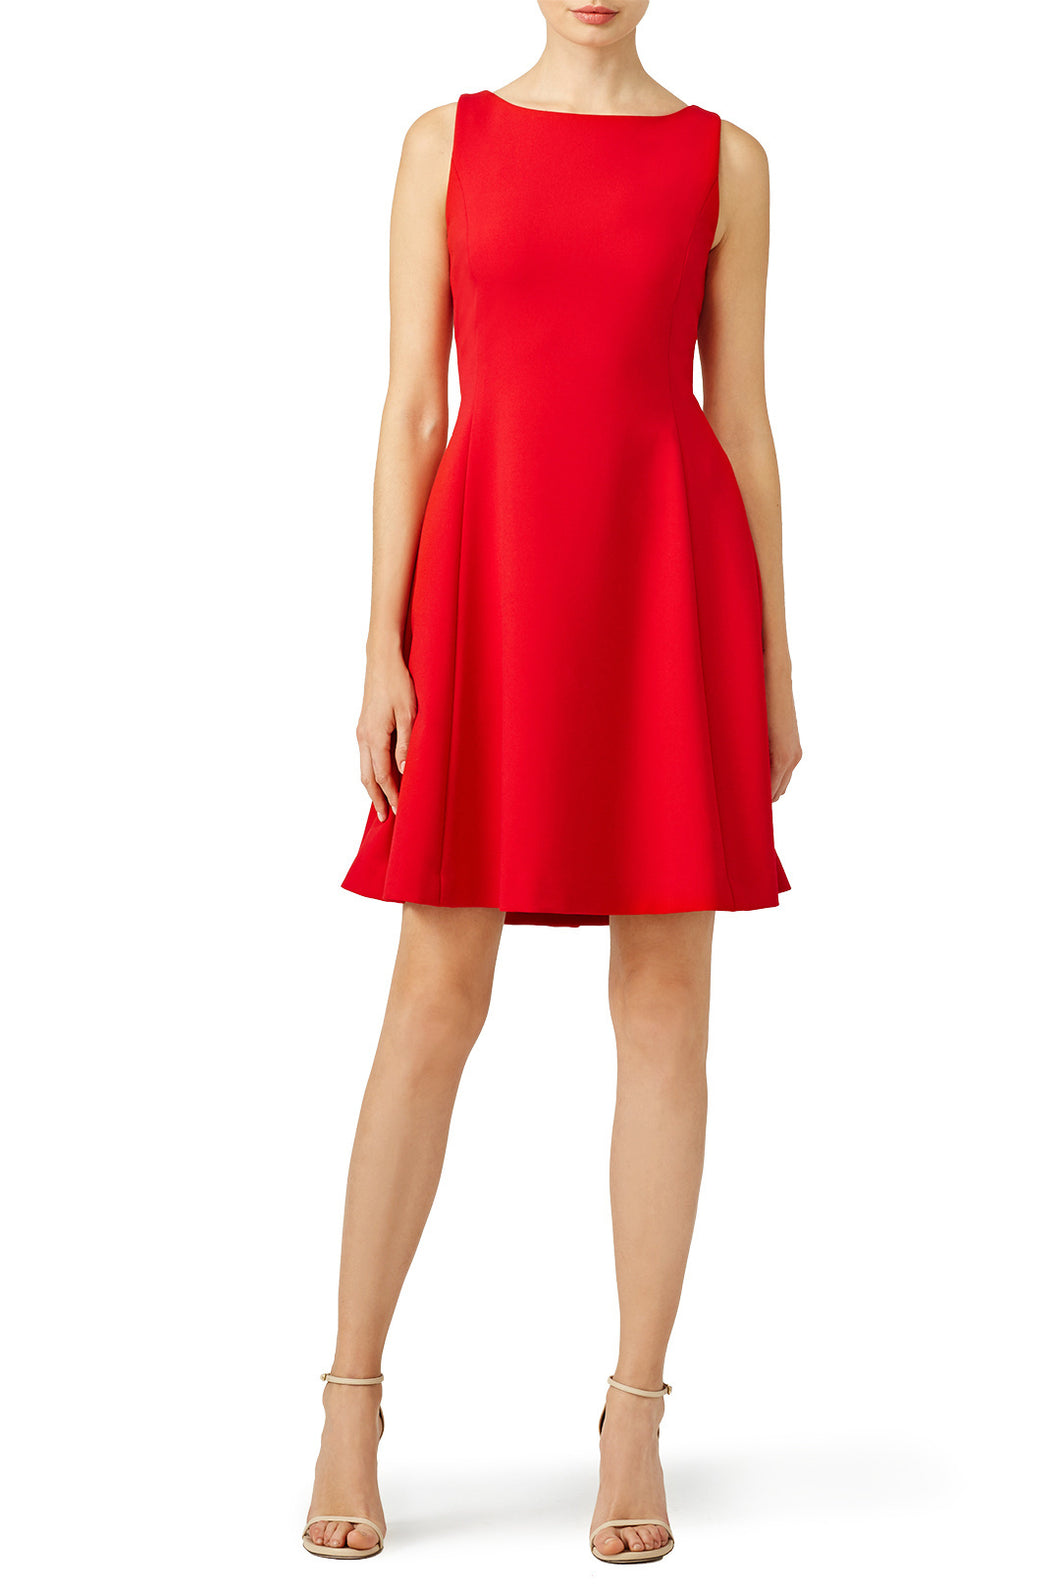 Pink Tartan Red Open Neck Dress - Size 0